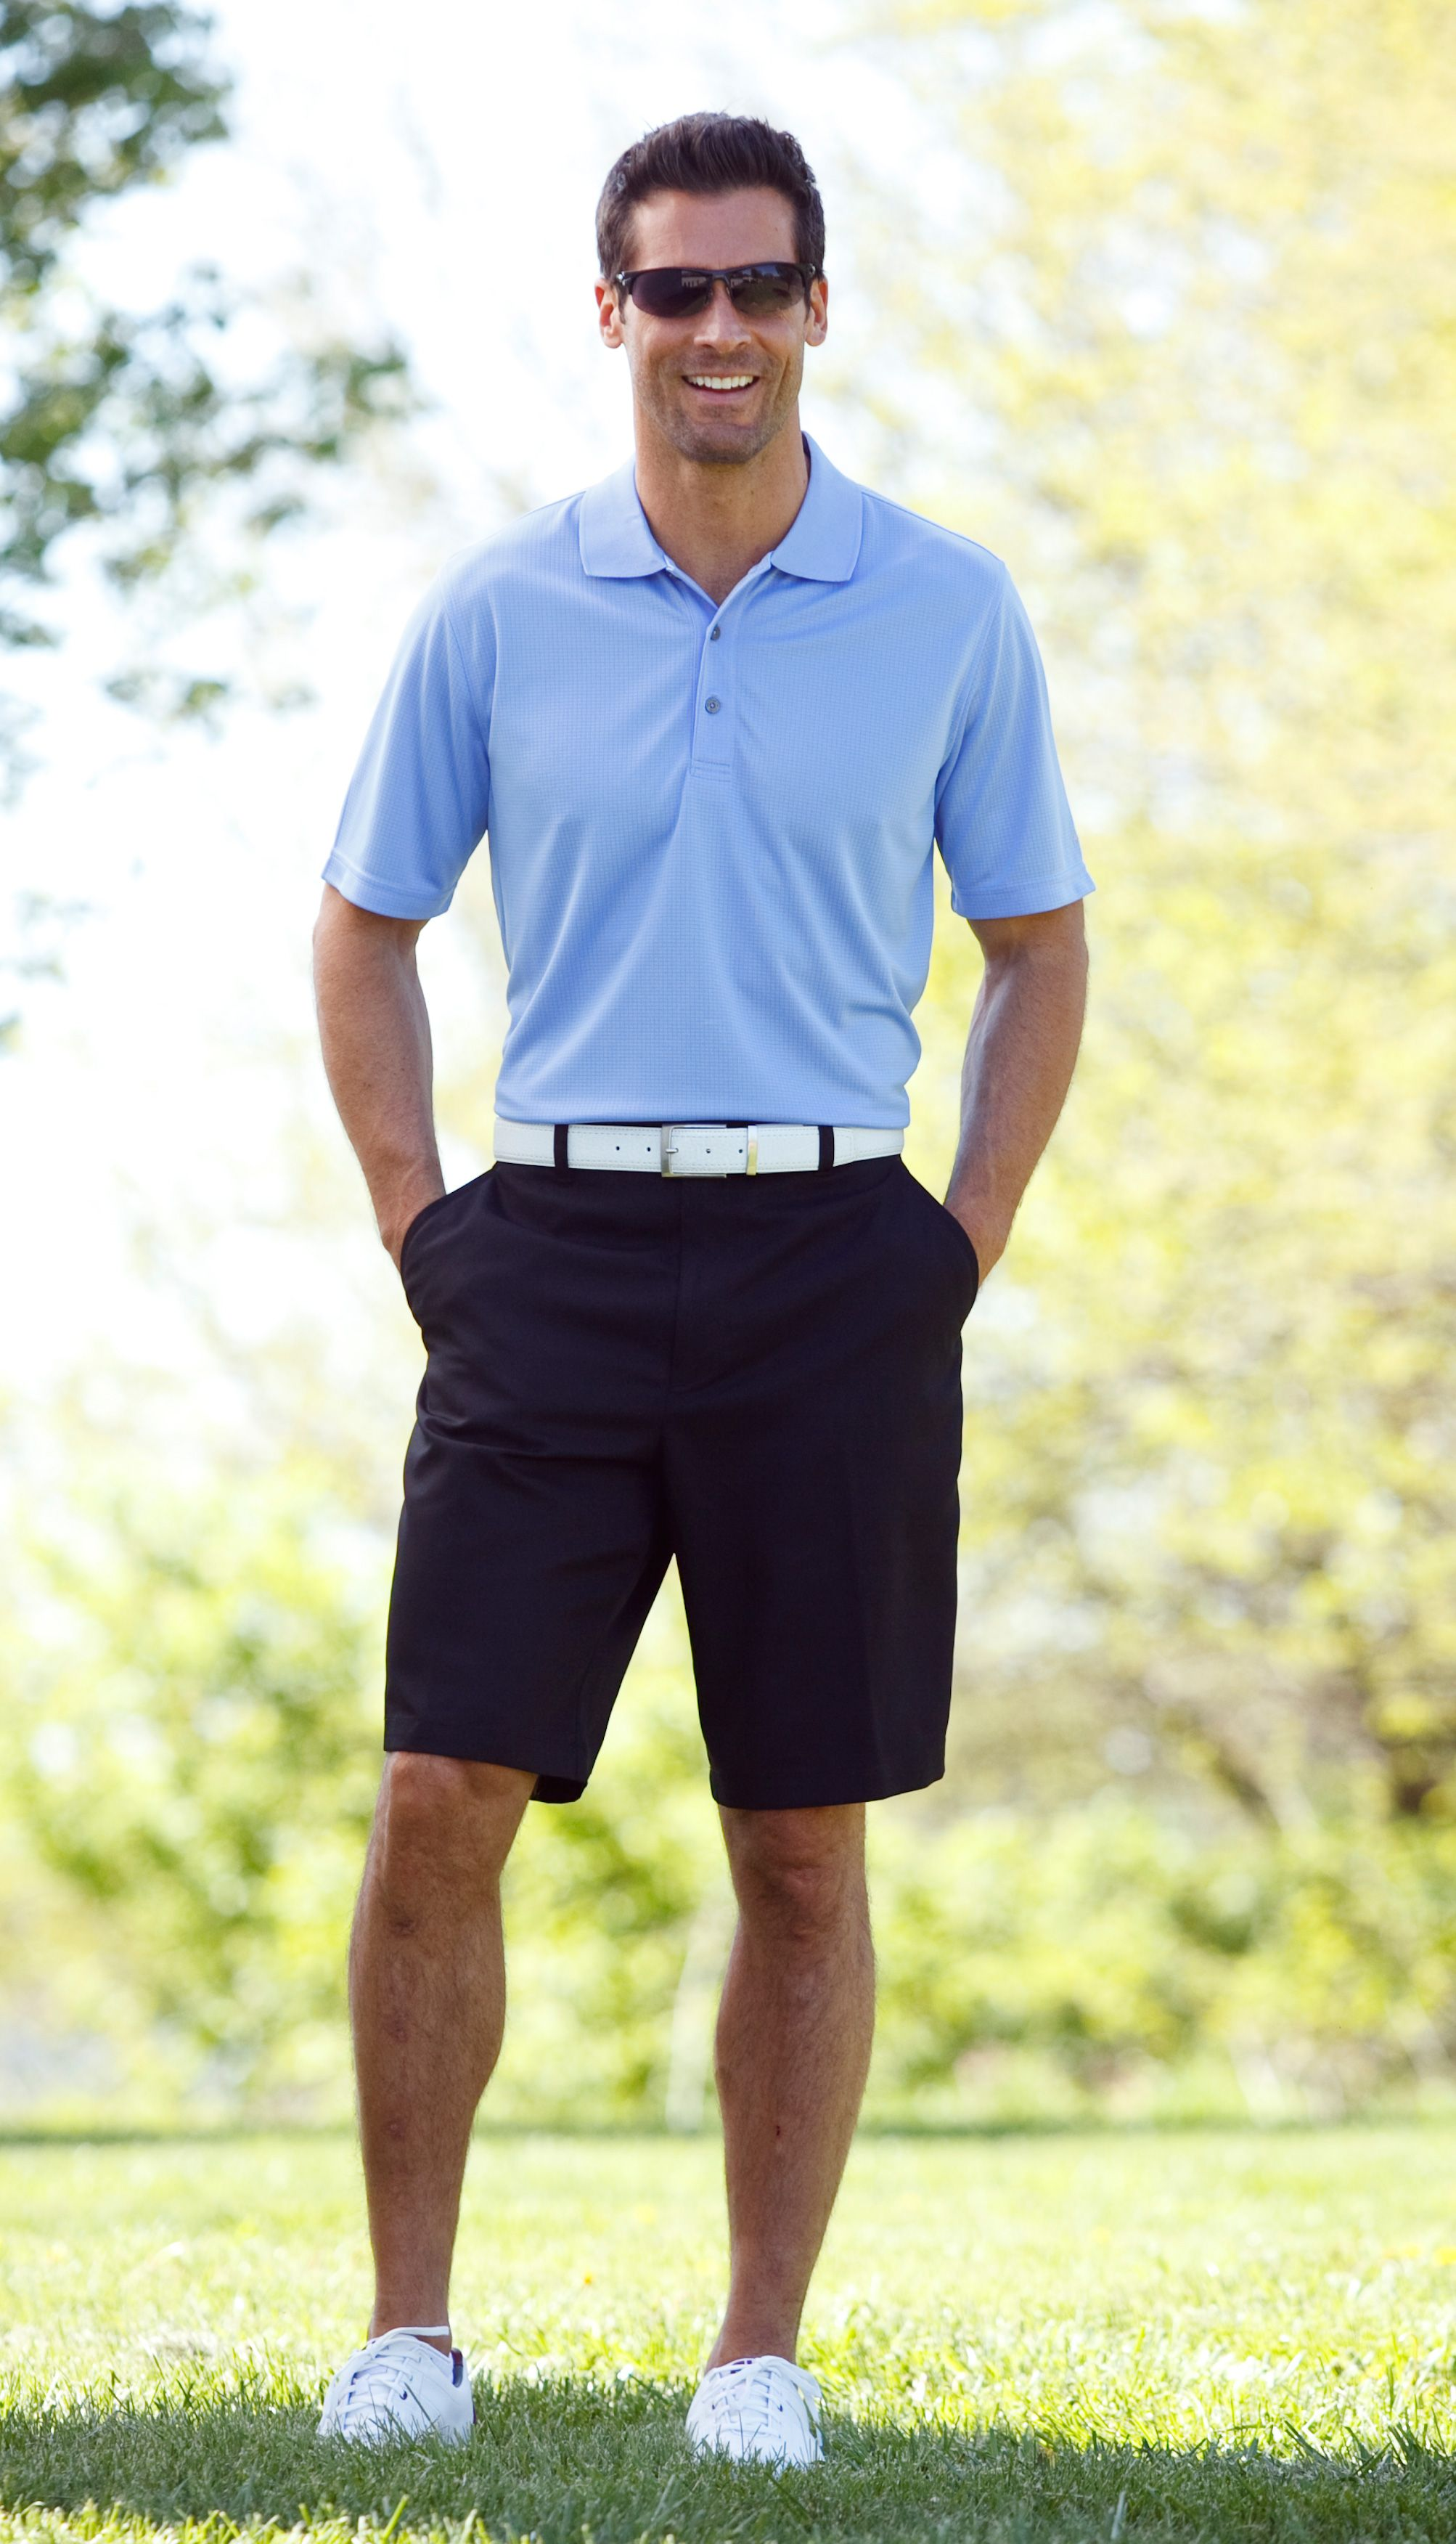 Tee Him Up For A Great Summer In The Best Golf Gear Polo 24 99 And Shorts 29 99 Gordmans Greatguygiftguide Fa Mens Golf Outfit Golf Outfit Mens Outfits [ 3504 x 2006 Pixel ]